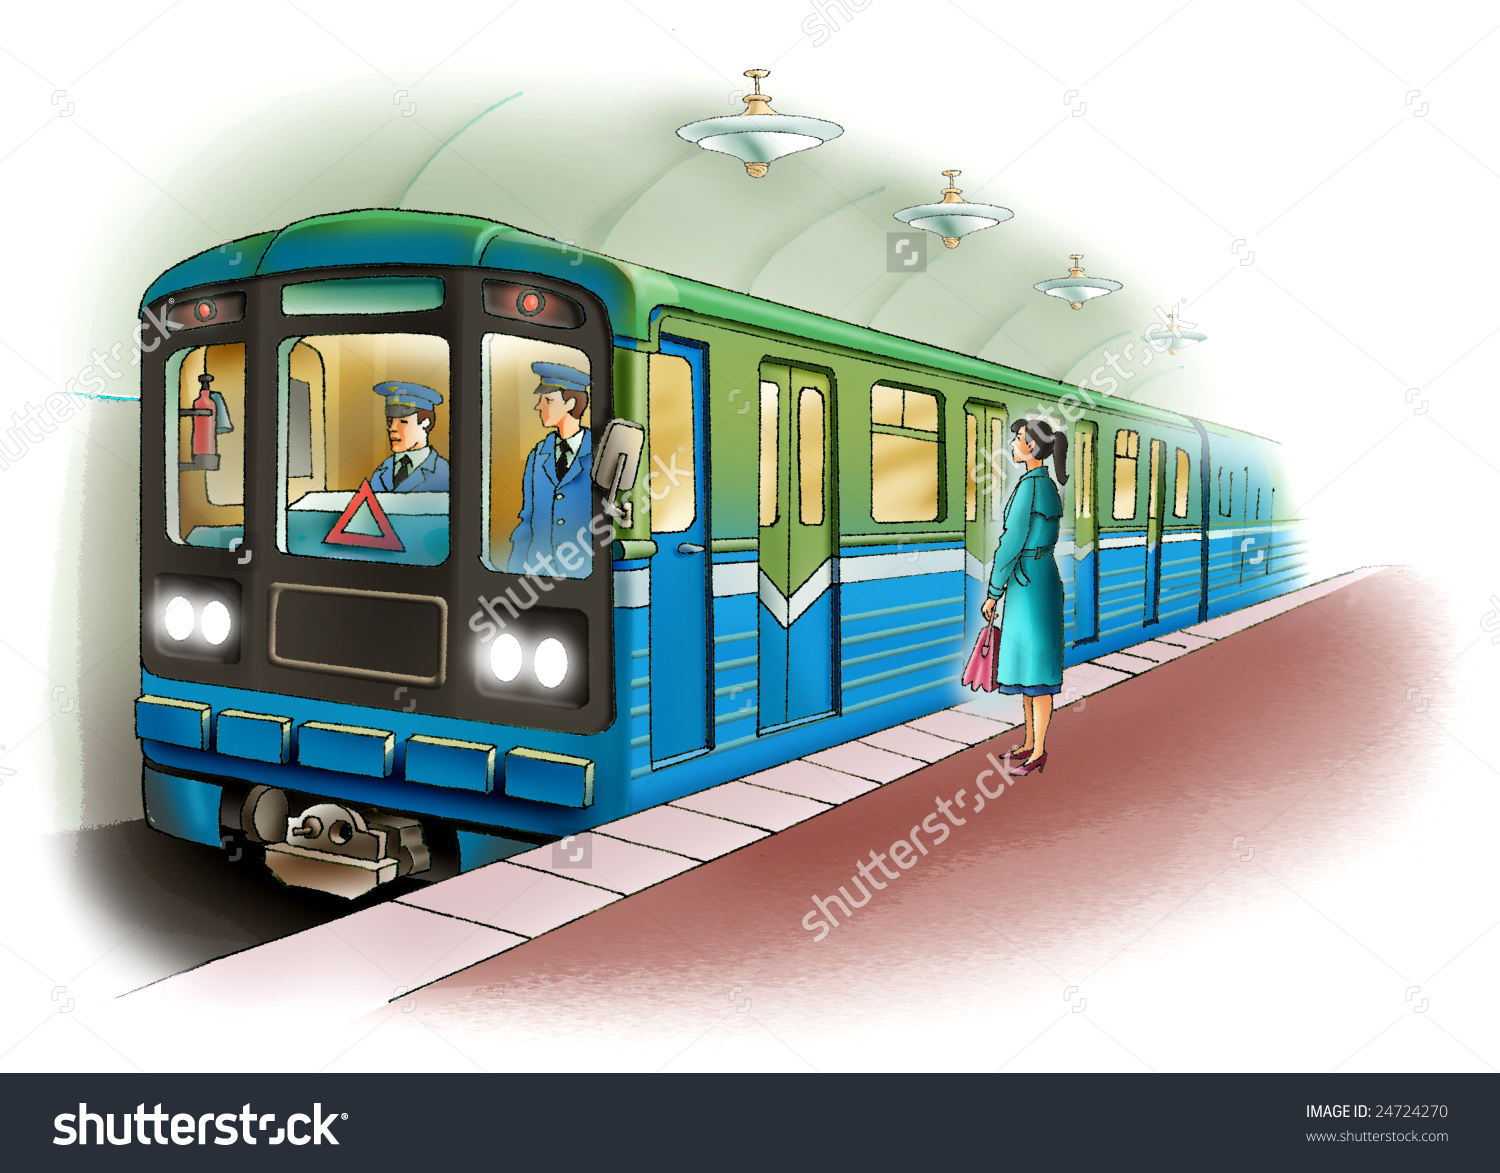 Underground train clipart.